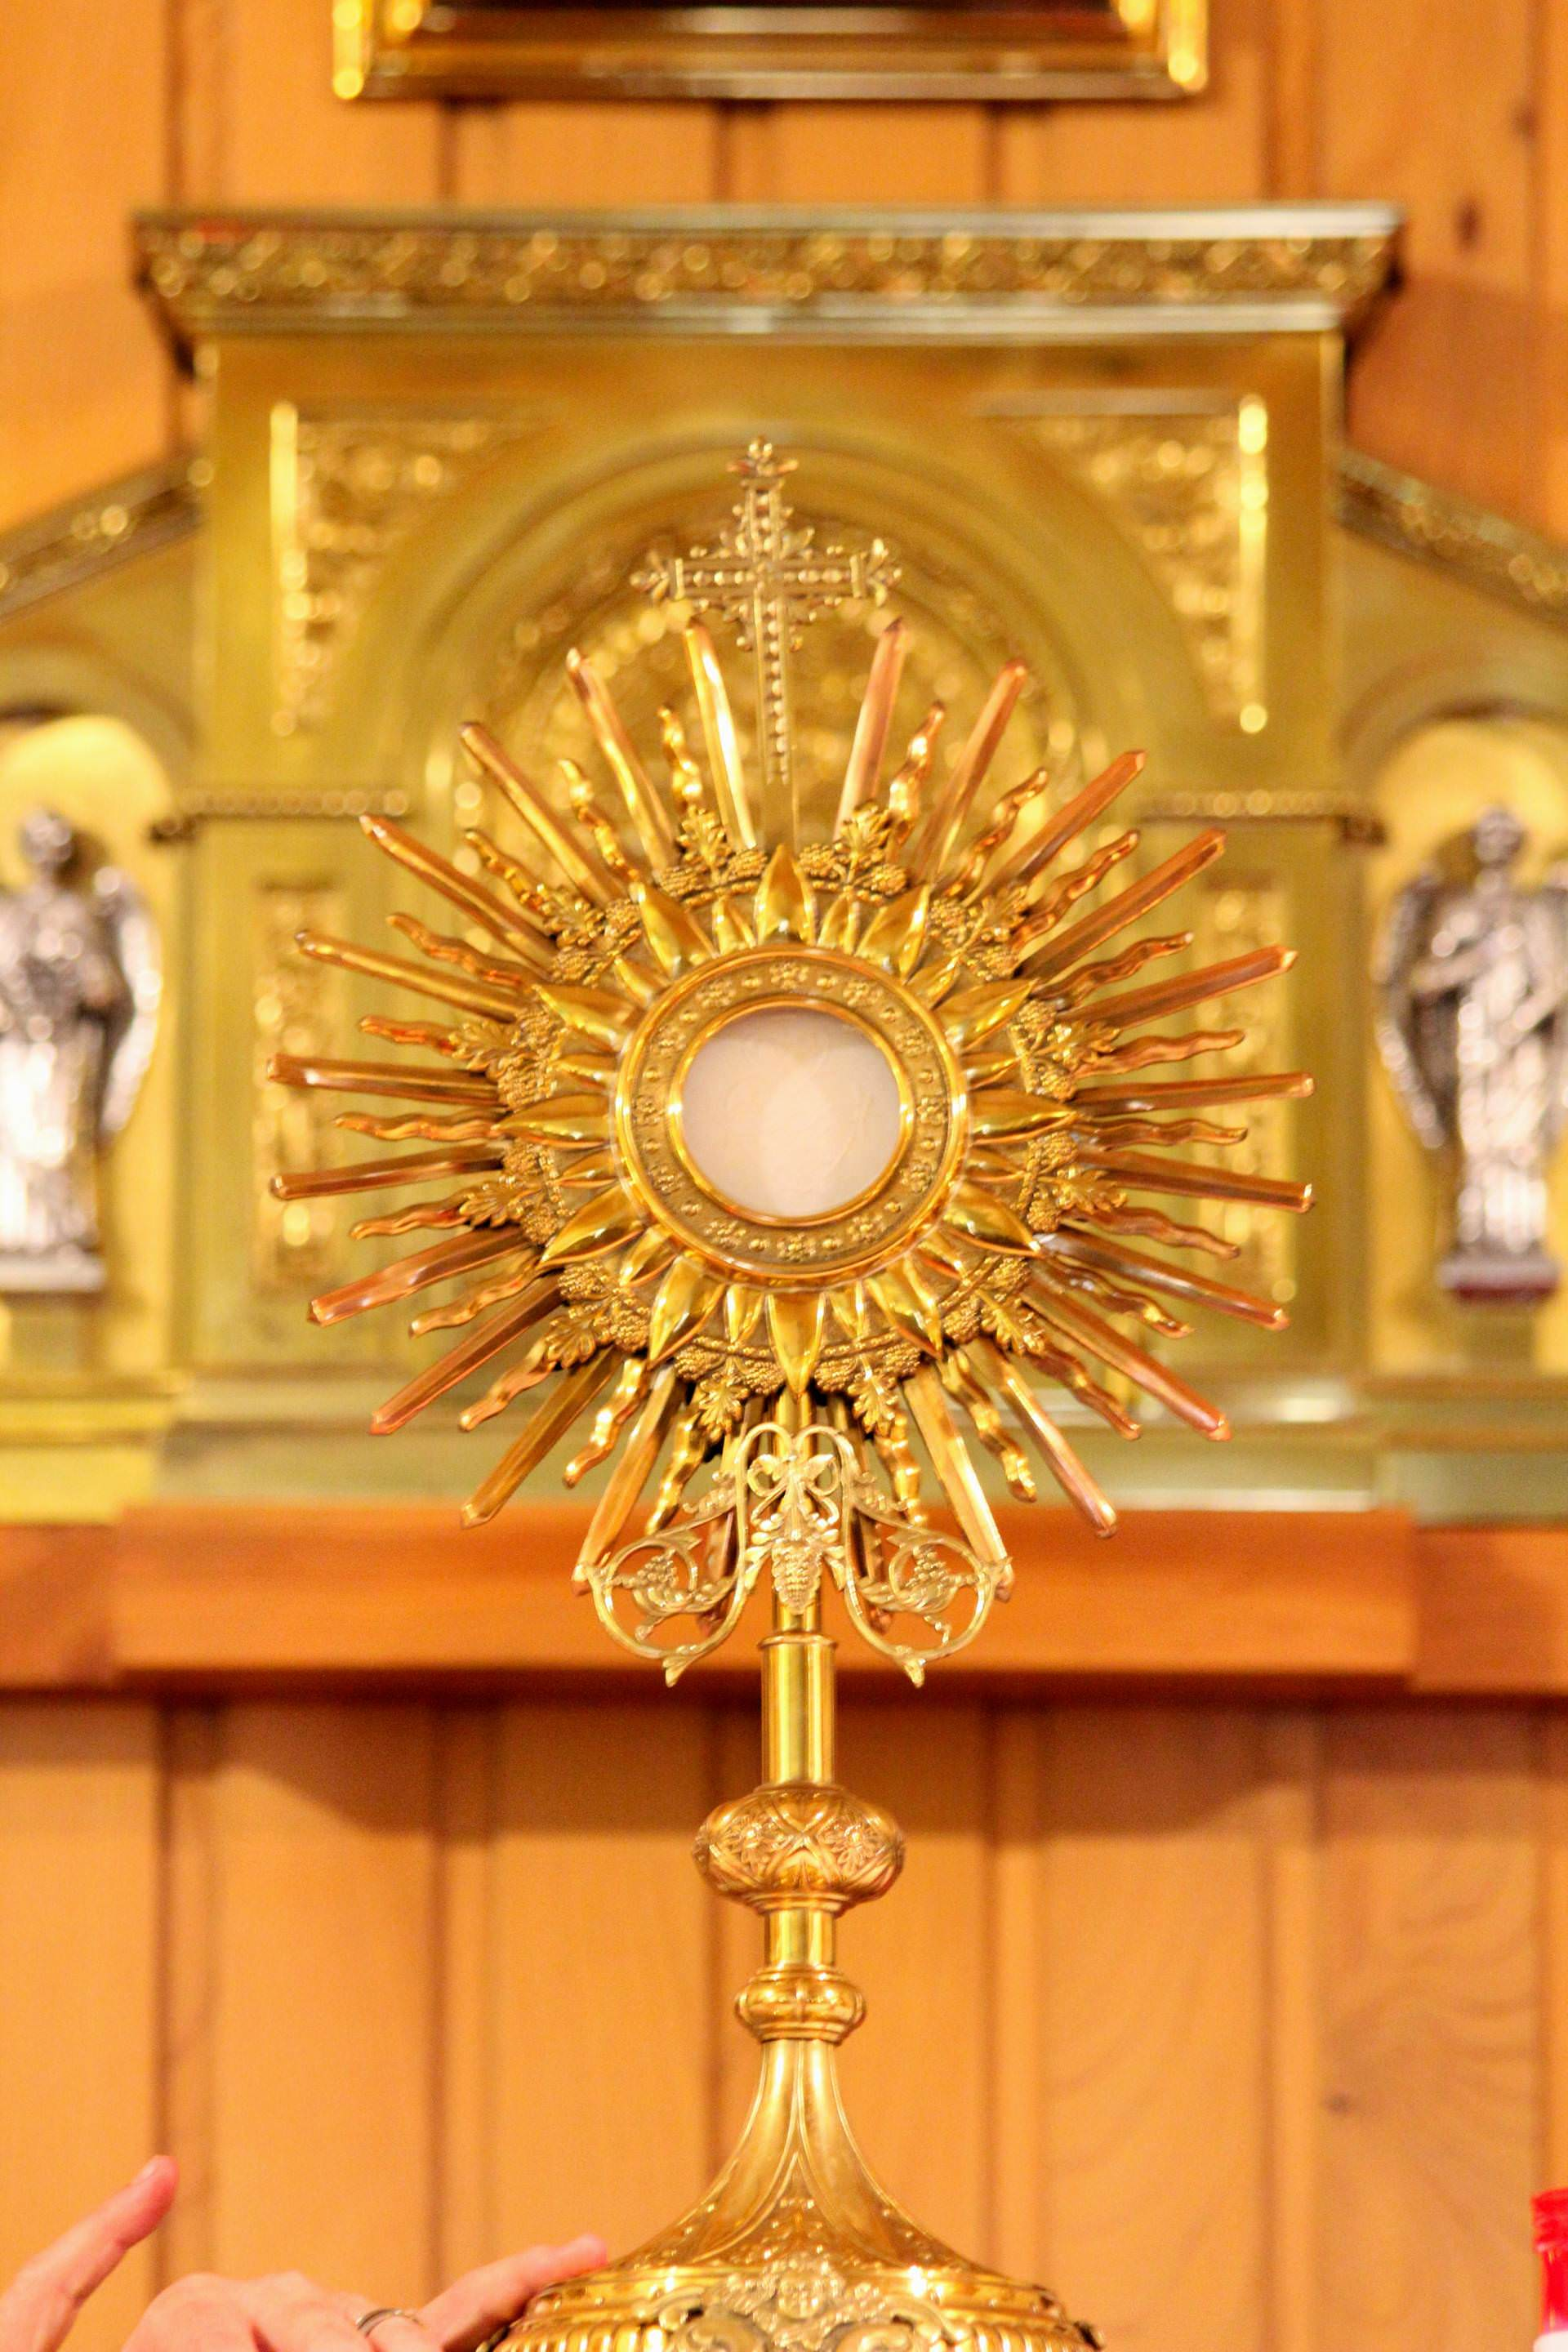 exposition, blessed sacrament, consecrated host, worship, to worship, eucharist, bread of life, god, king, sir, bread from heaven, ostensorio, body of christ